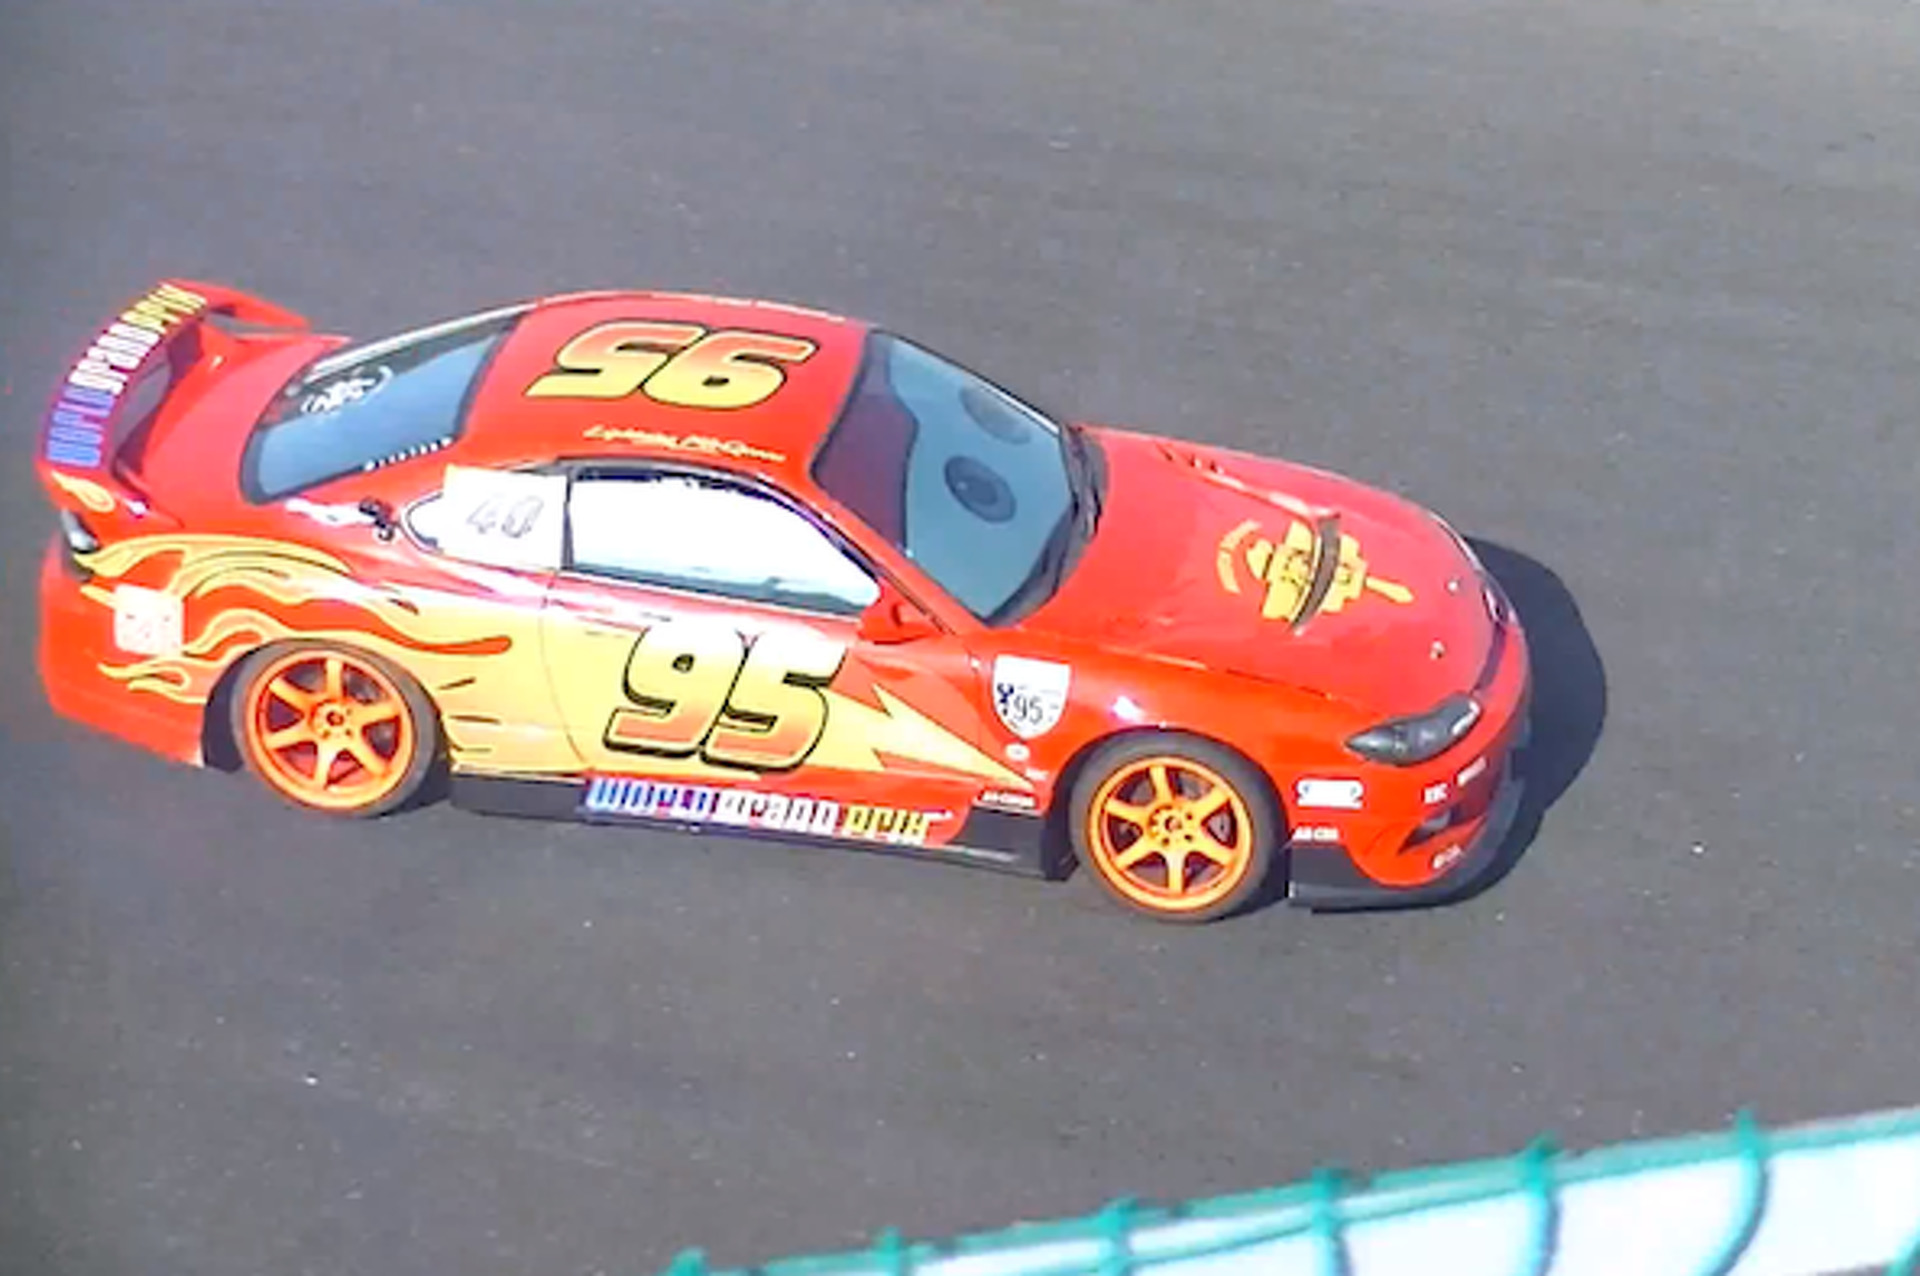 Watch Lightning McQueen in a Japanese Drift Race : lighting mcqueen racing - www.canuckmediamonitor.org